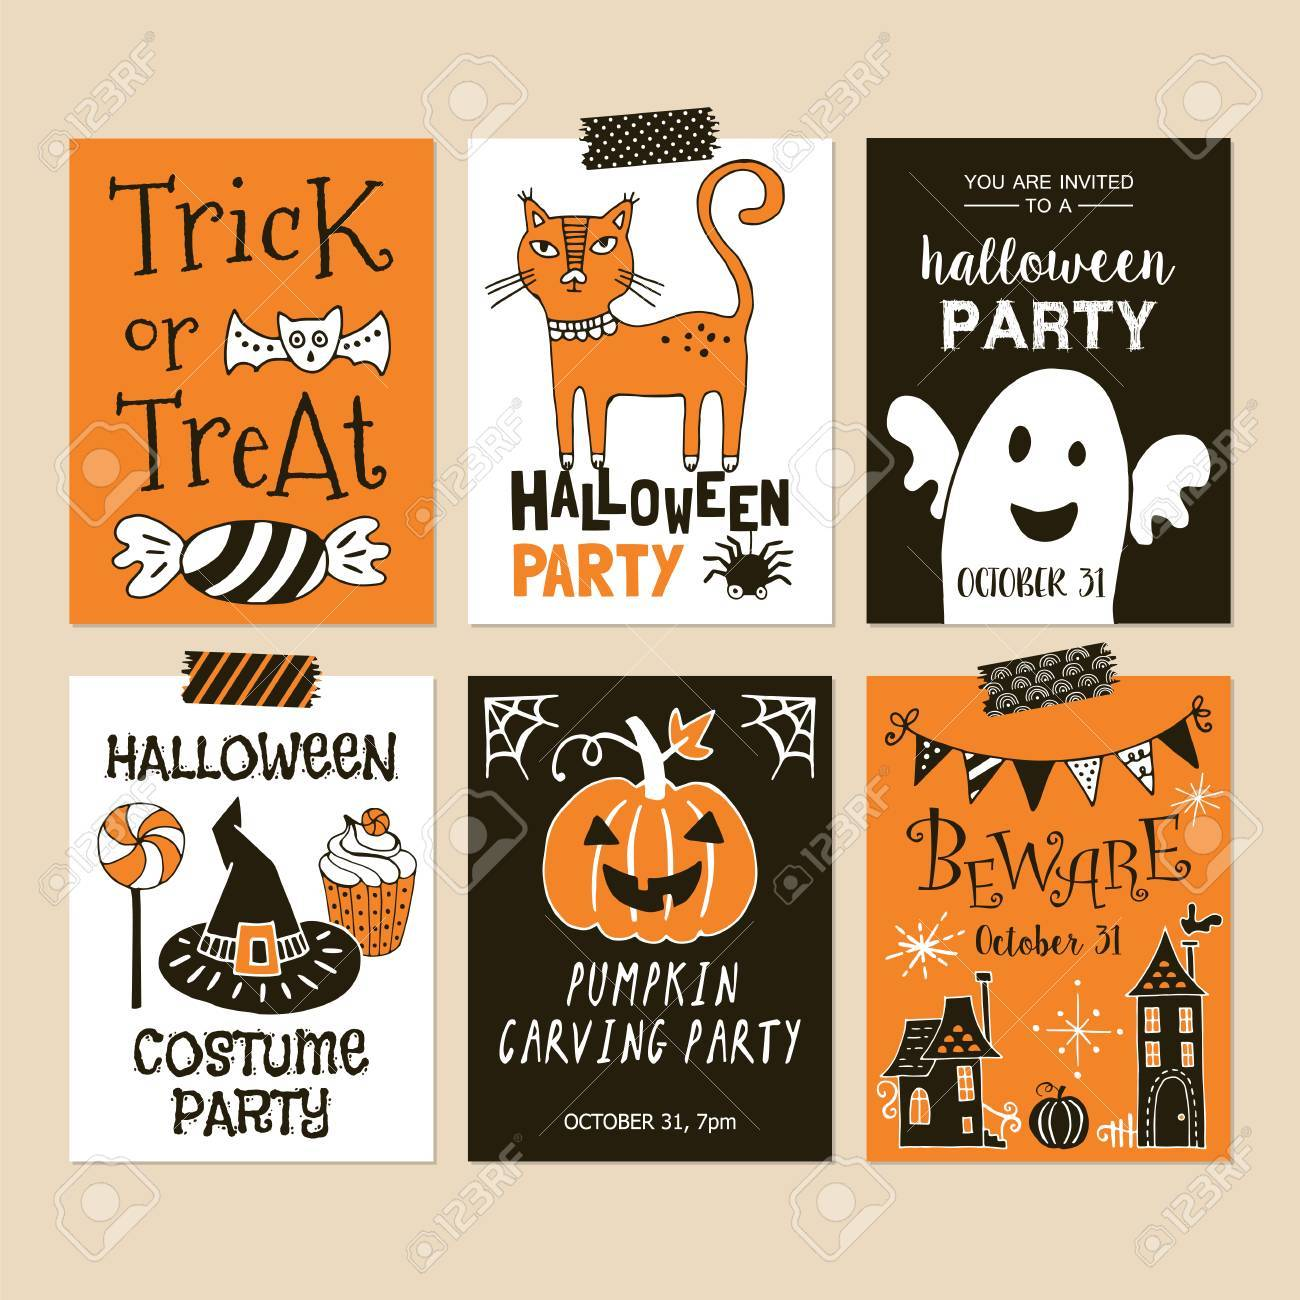 Halloween Holiday Party Invitation Template Set Royalty Free